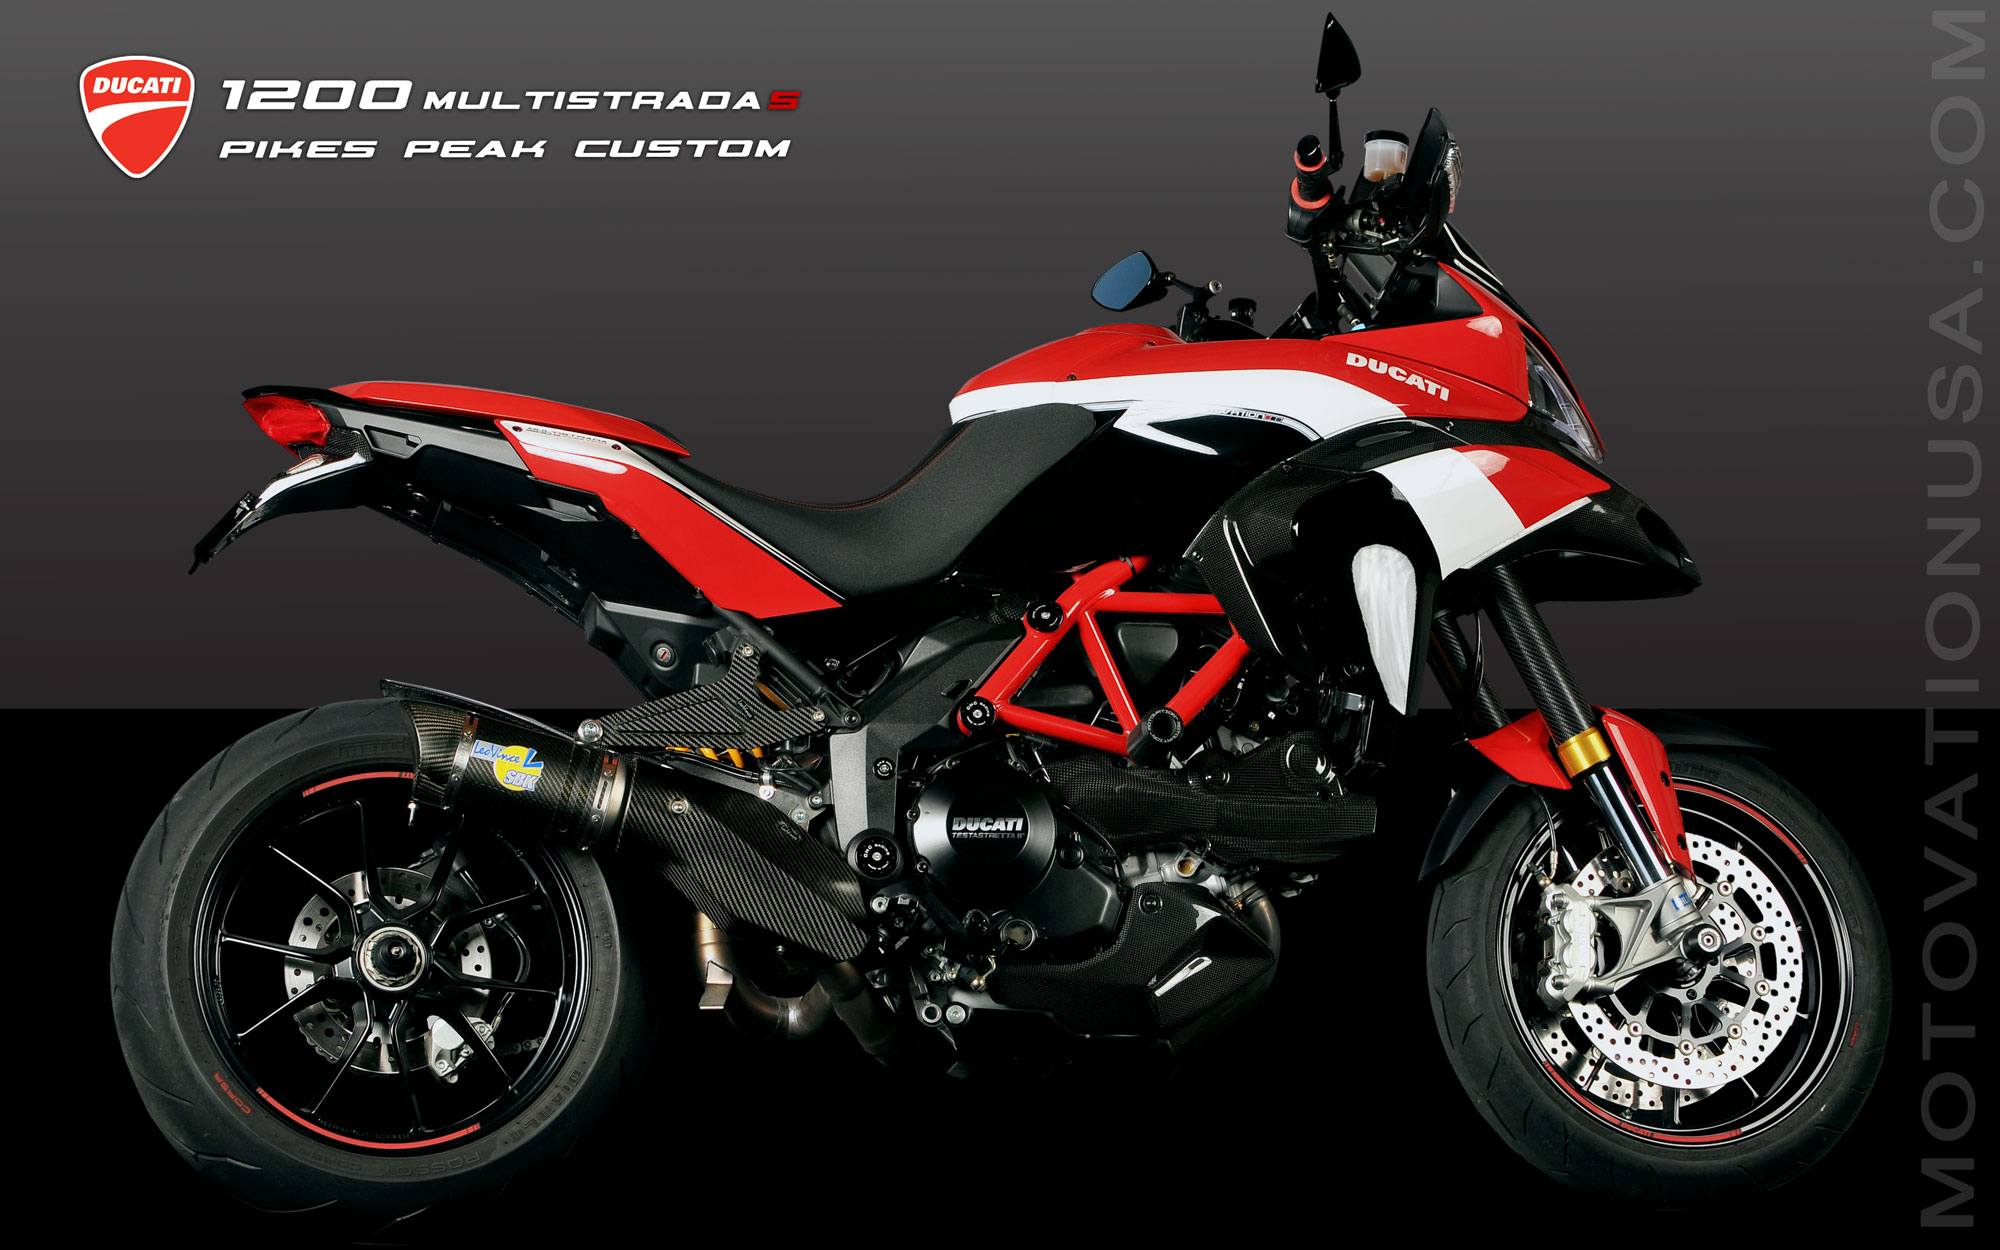 ducati ducati multistrada 1200 s pikes peak moto. Black Bedroom Furniture Sets. Home Design Ideas